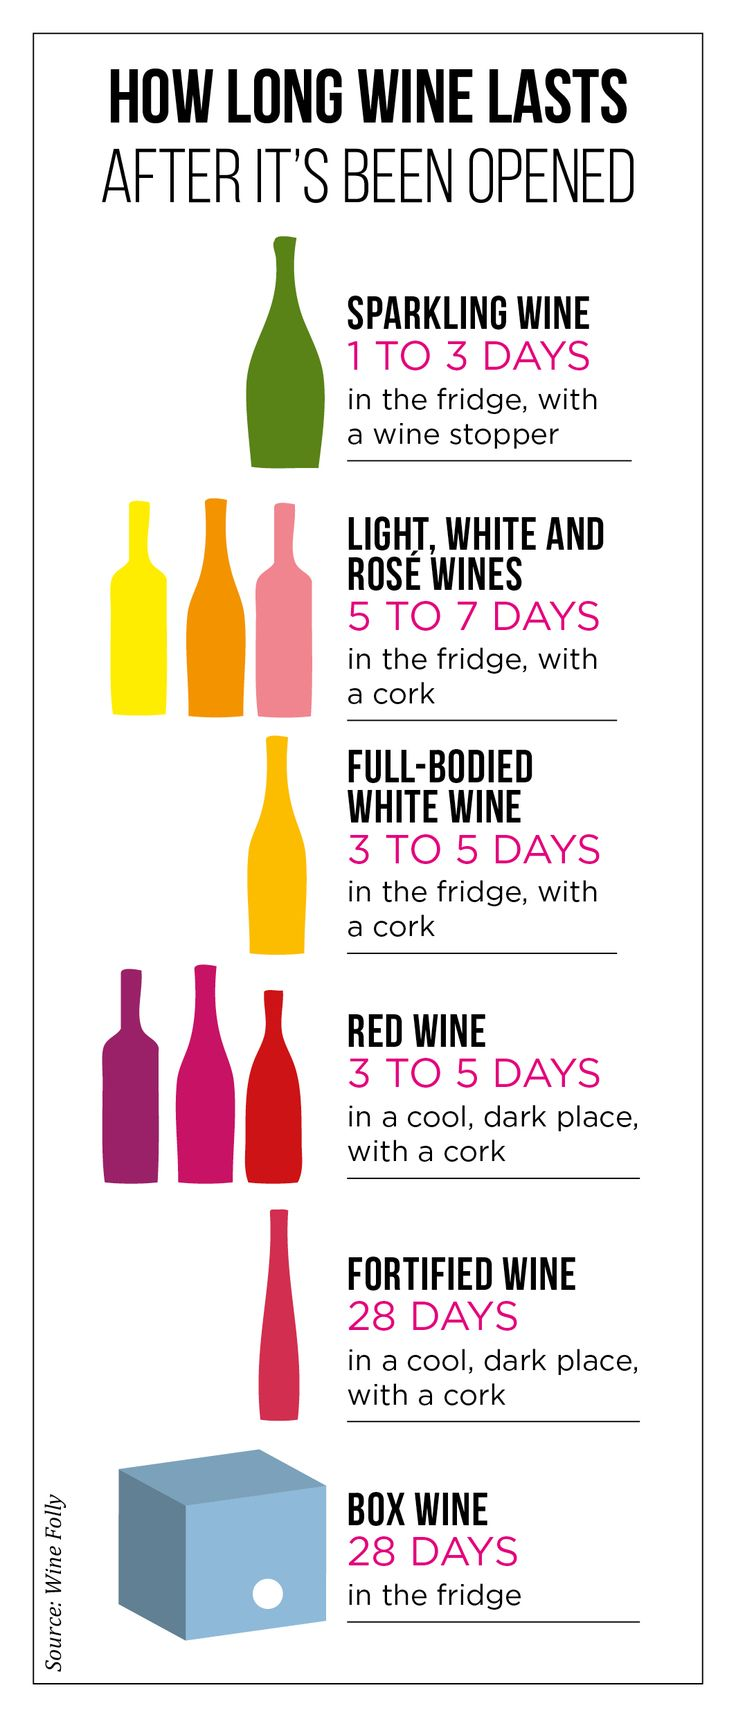 How long wine lasts after it's been opened.